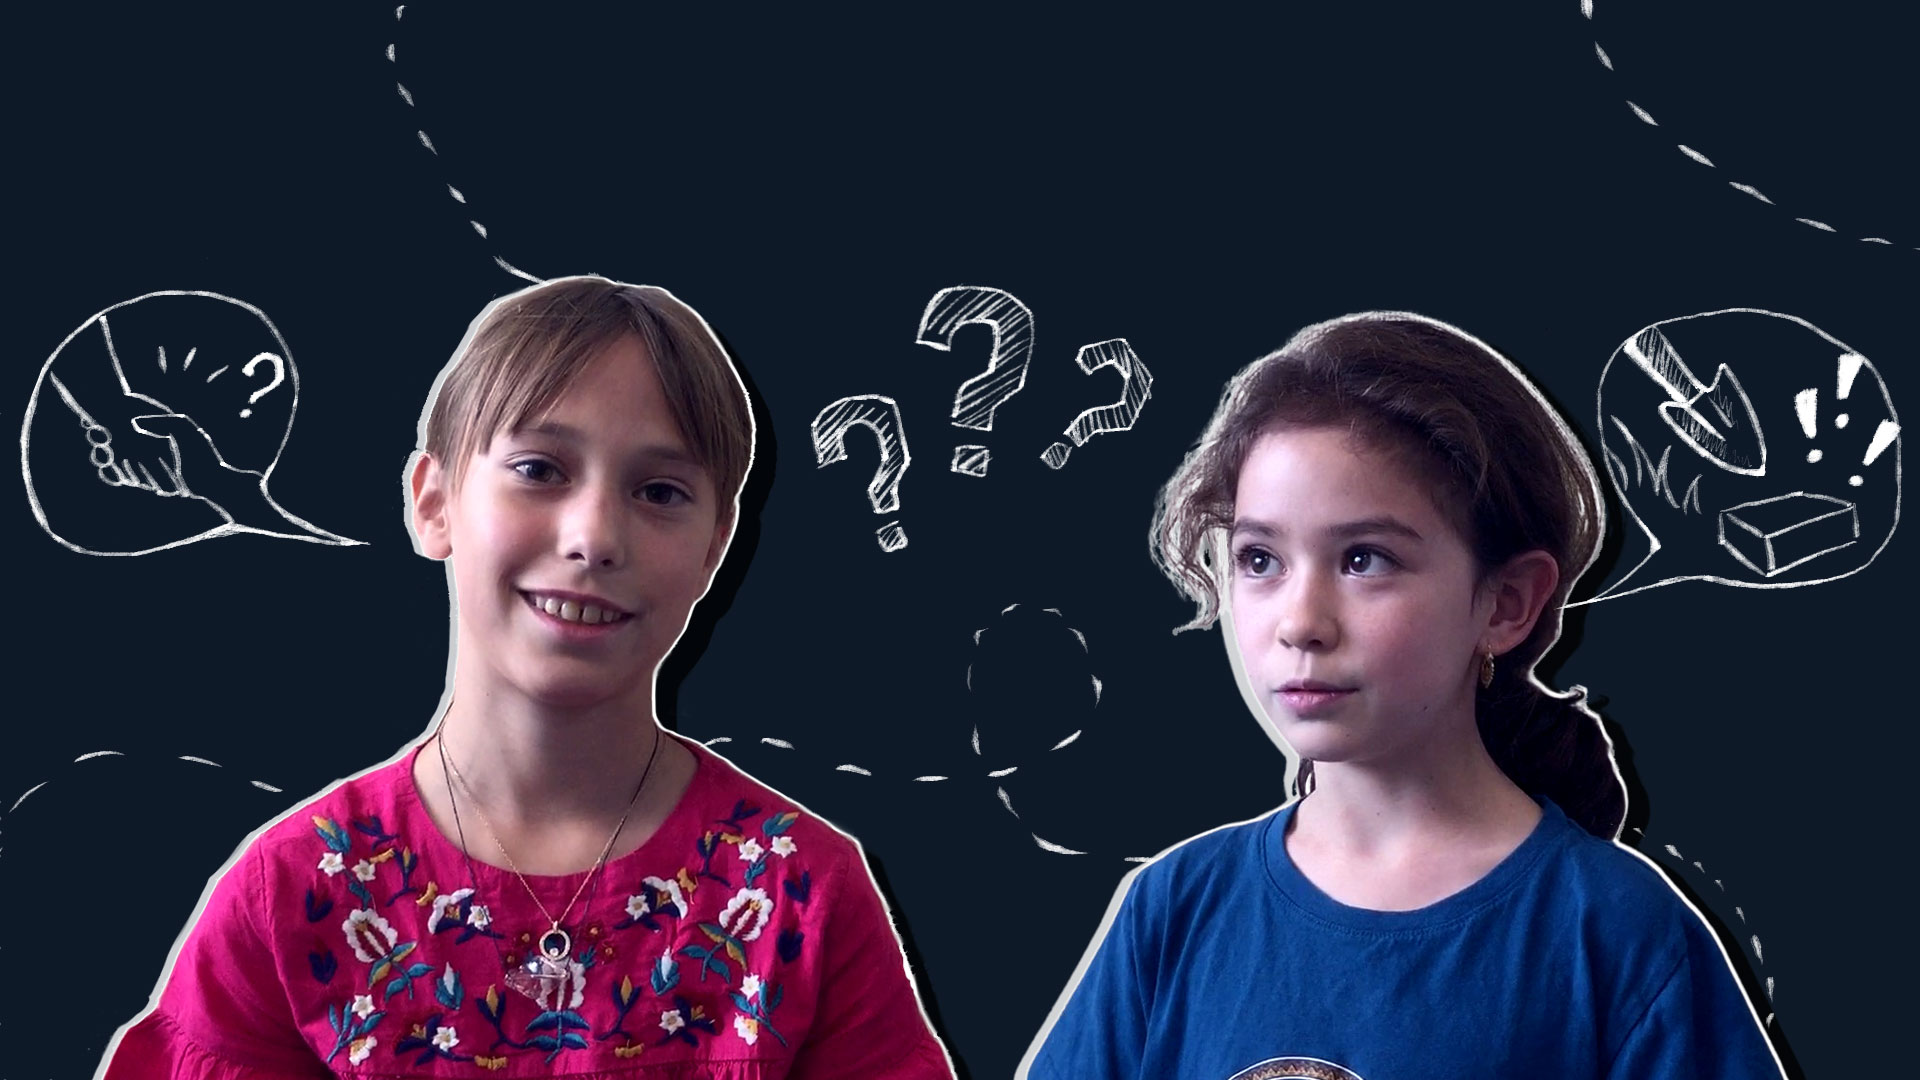 Two children's profile pictures